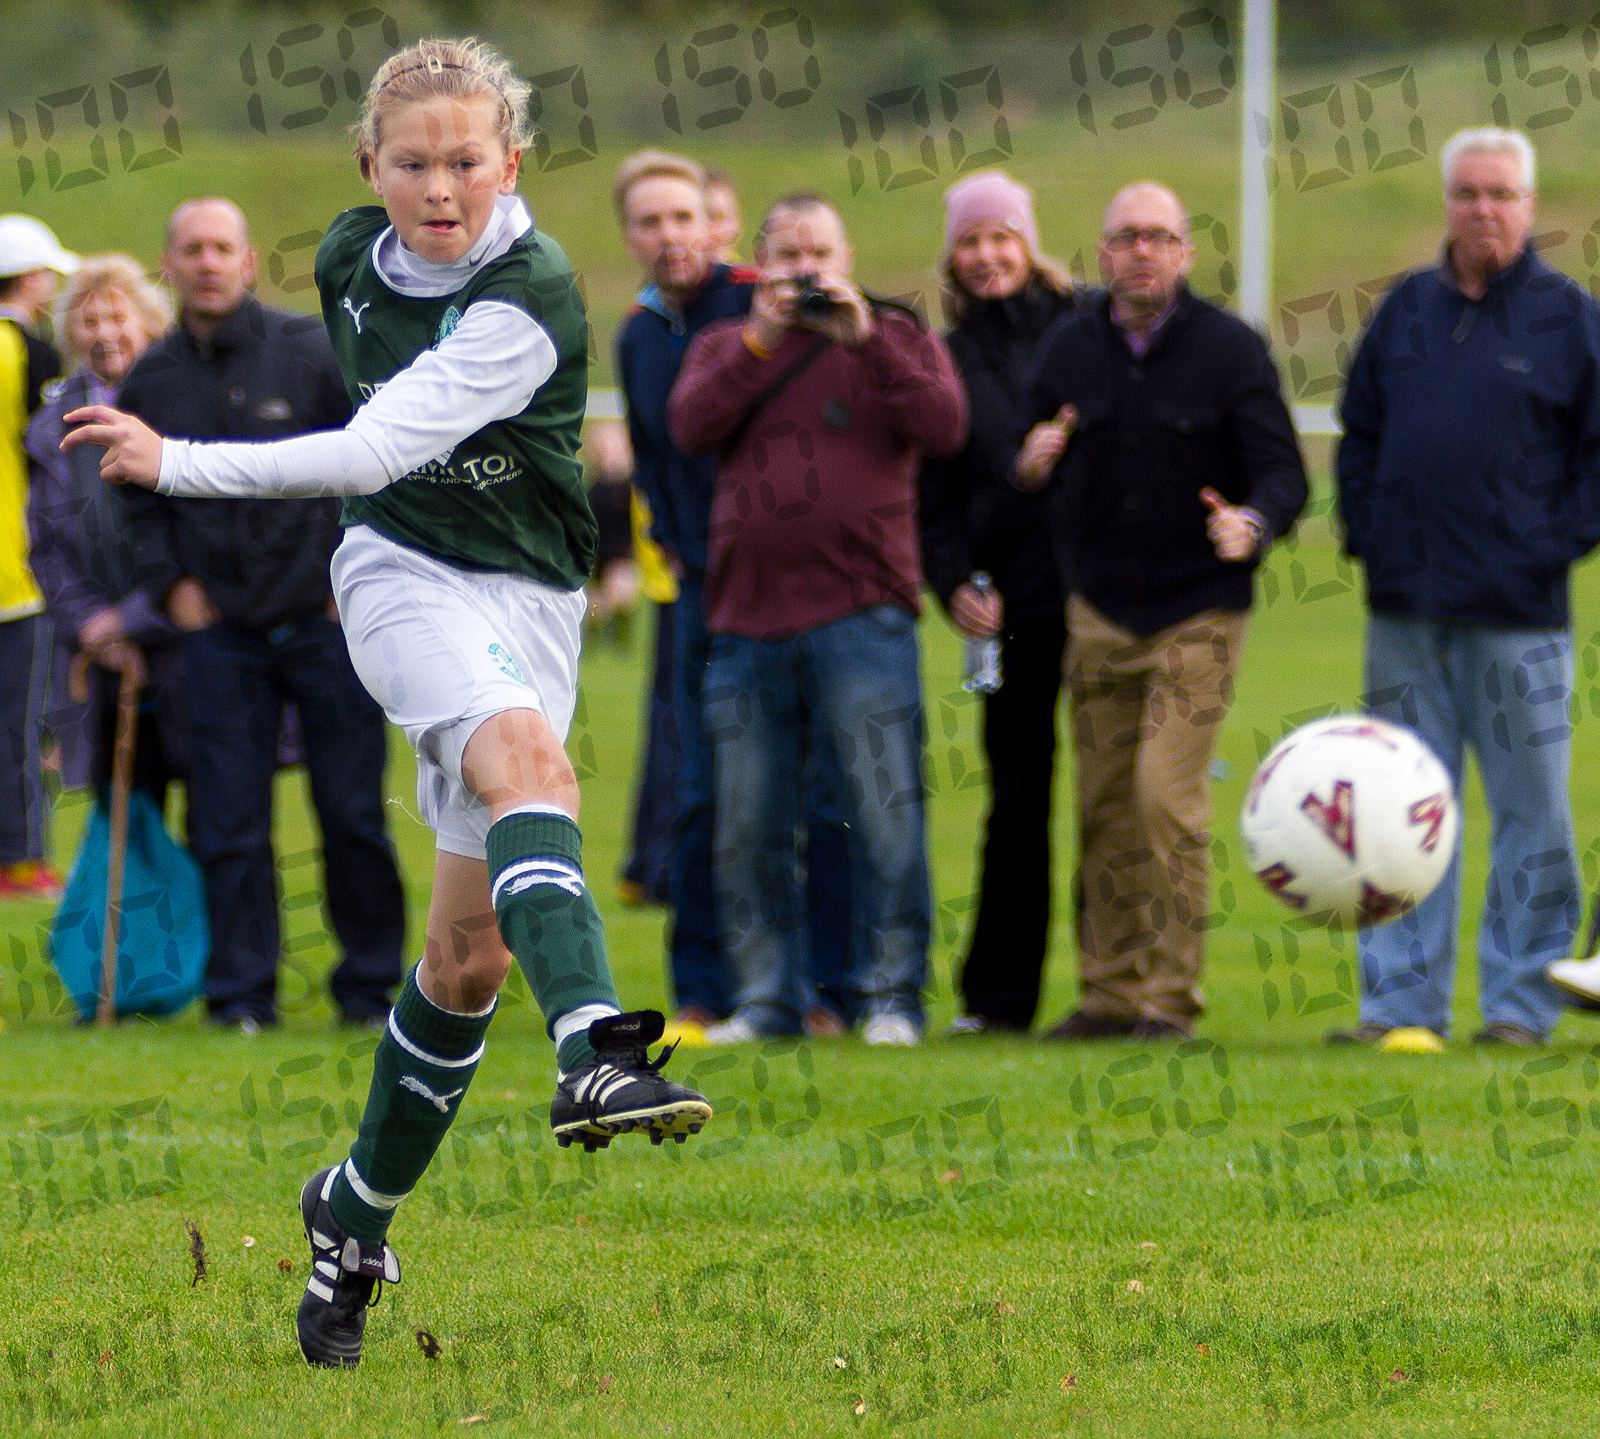 Hibs_v_Hearts_girls_13s-21.jpg